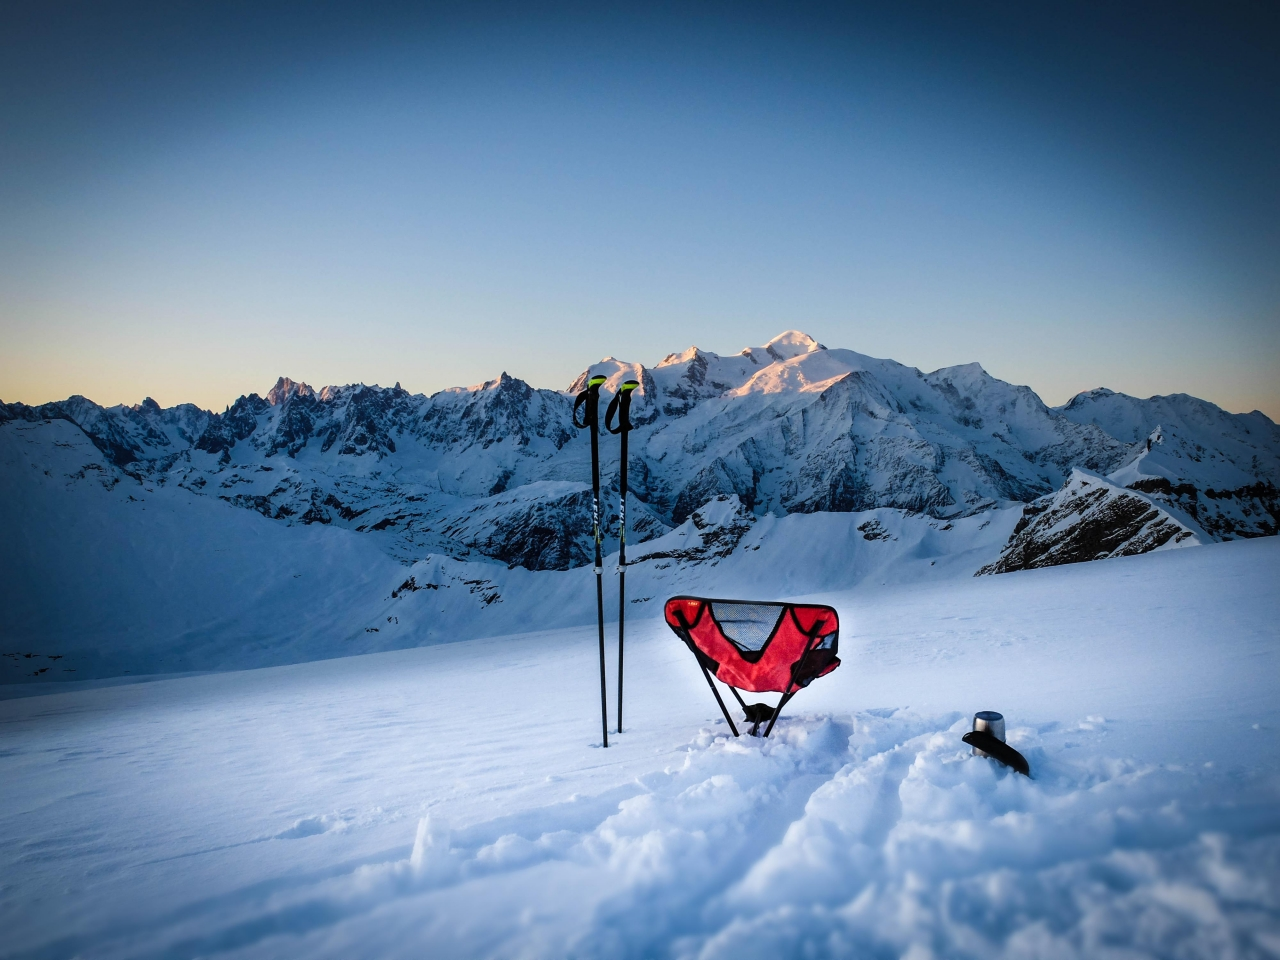 A picture from Mont Blanc / Monte Bianco by LEKI